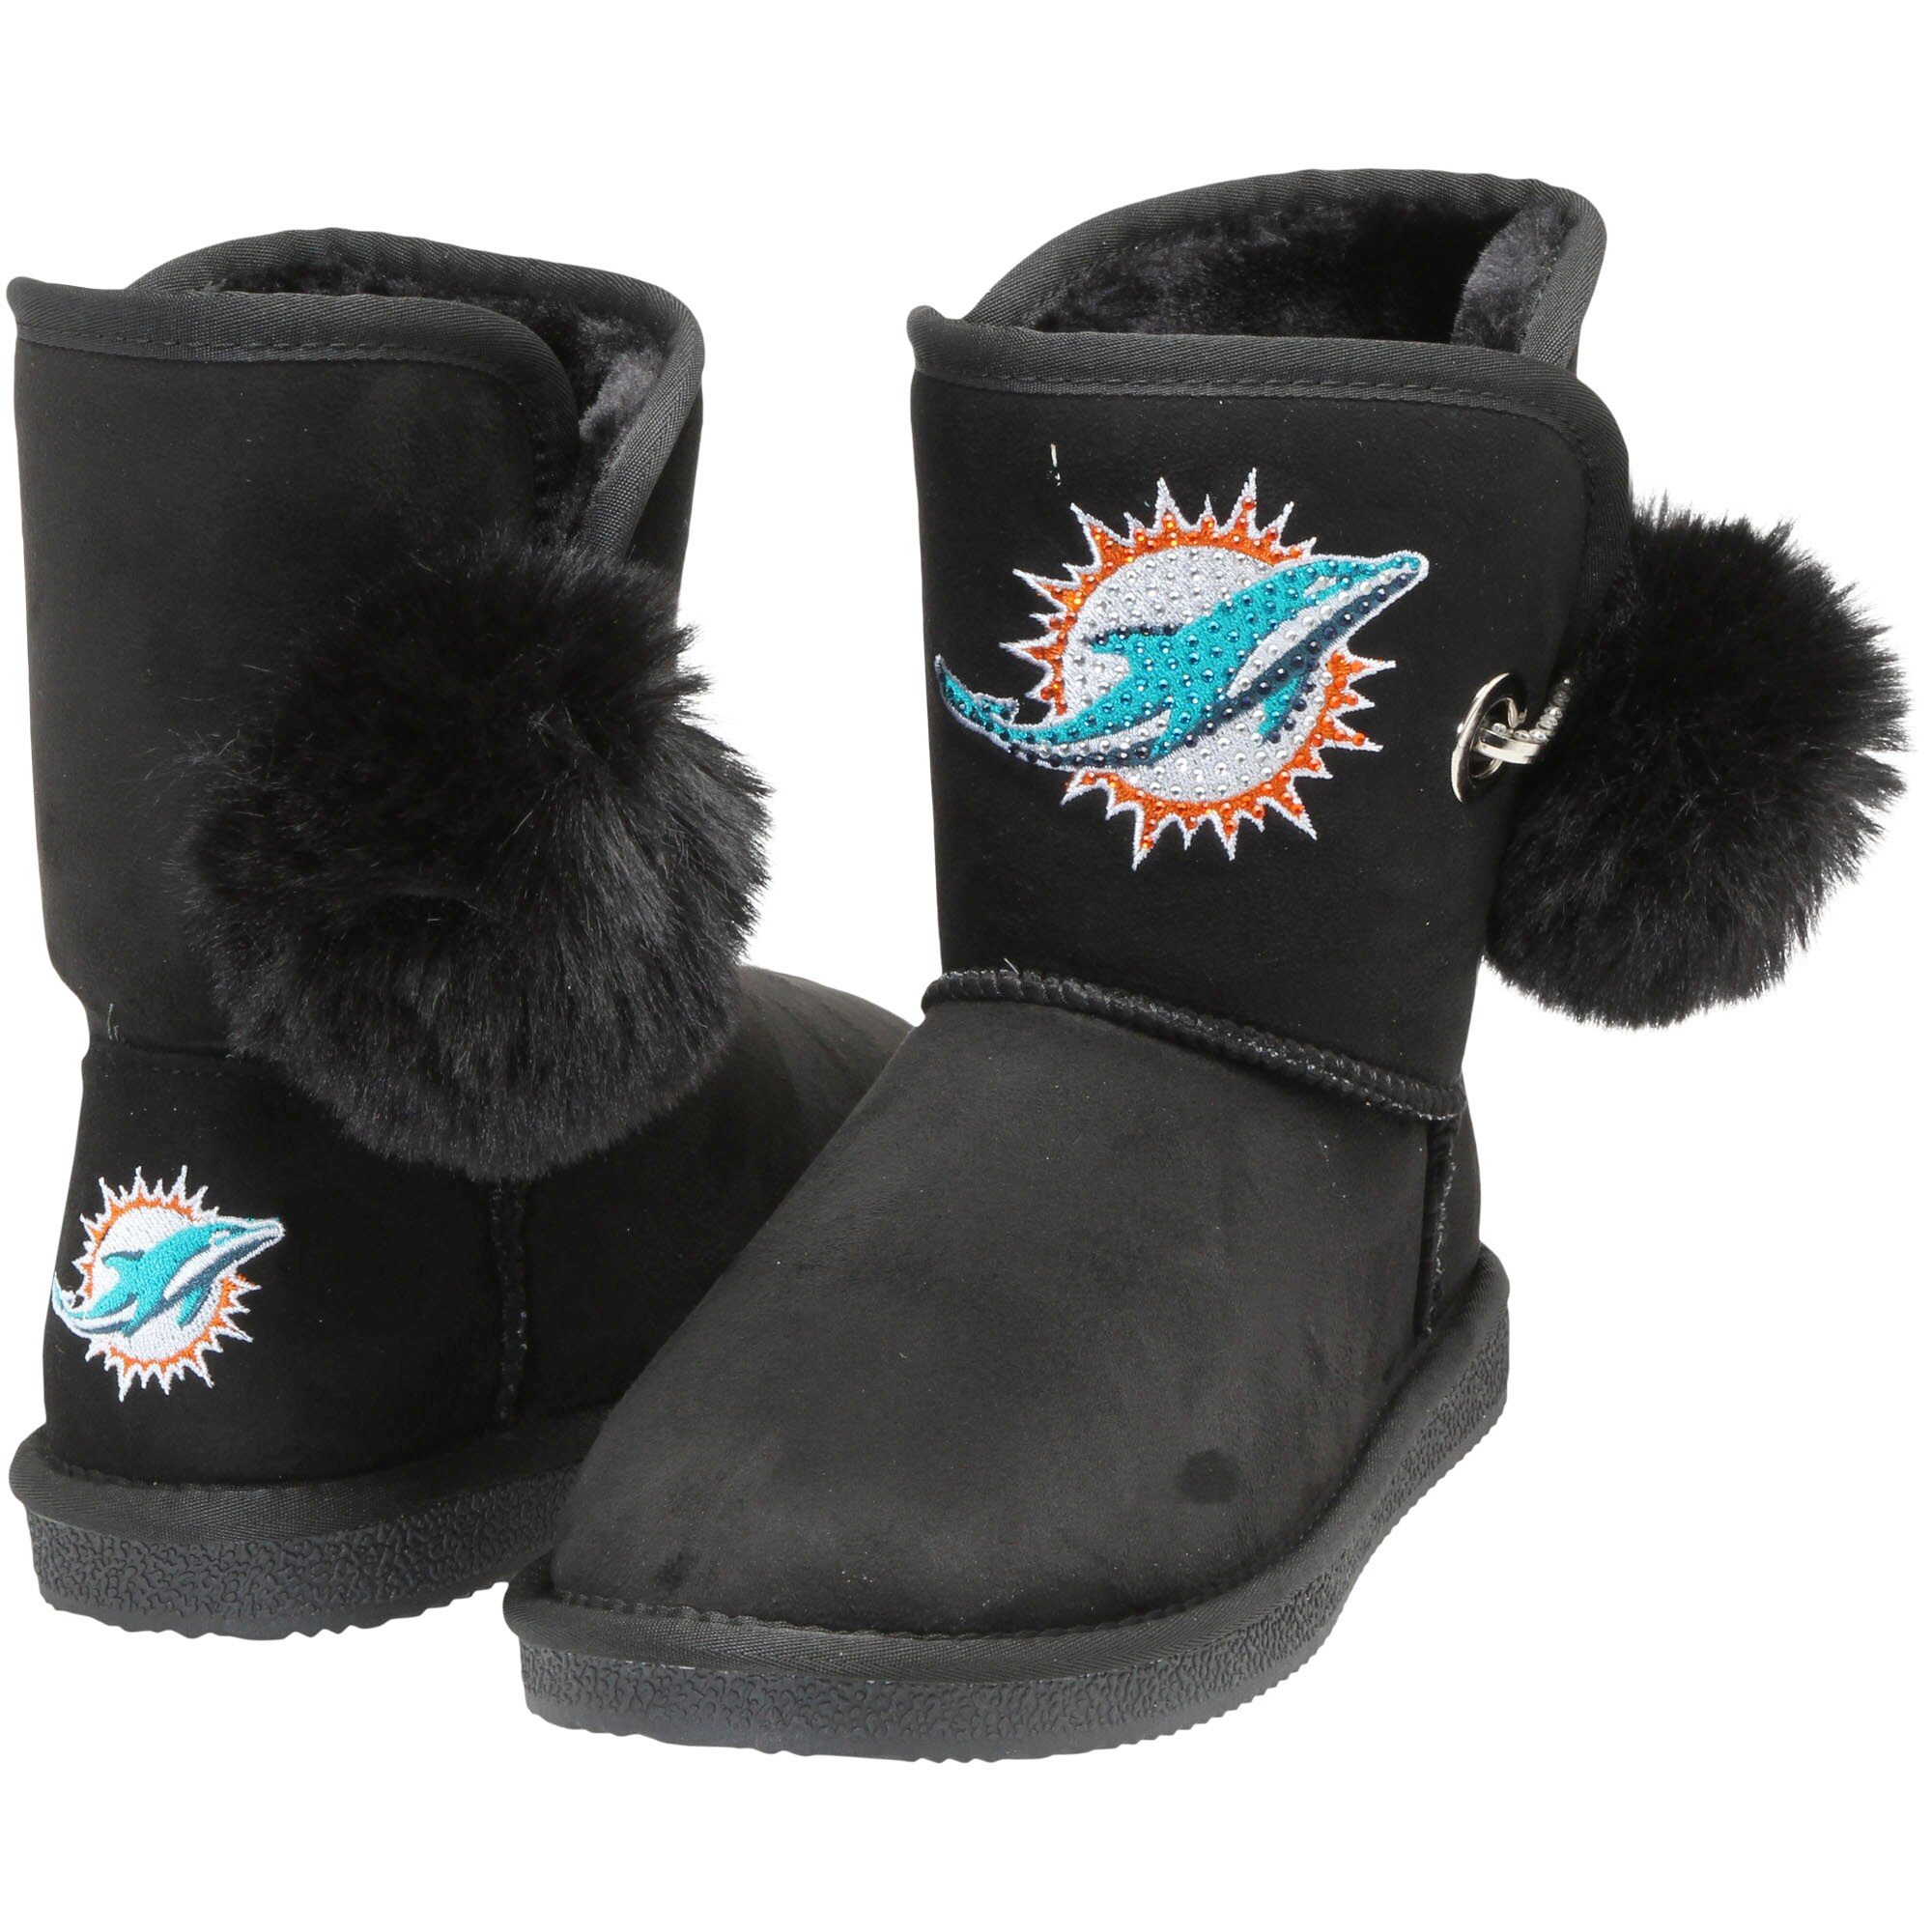 Miami Dolphins Cuce Women's The Fumble Faux Fur Boots - Black